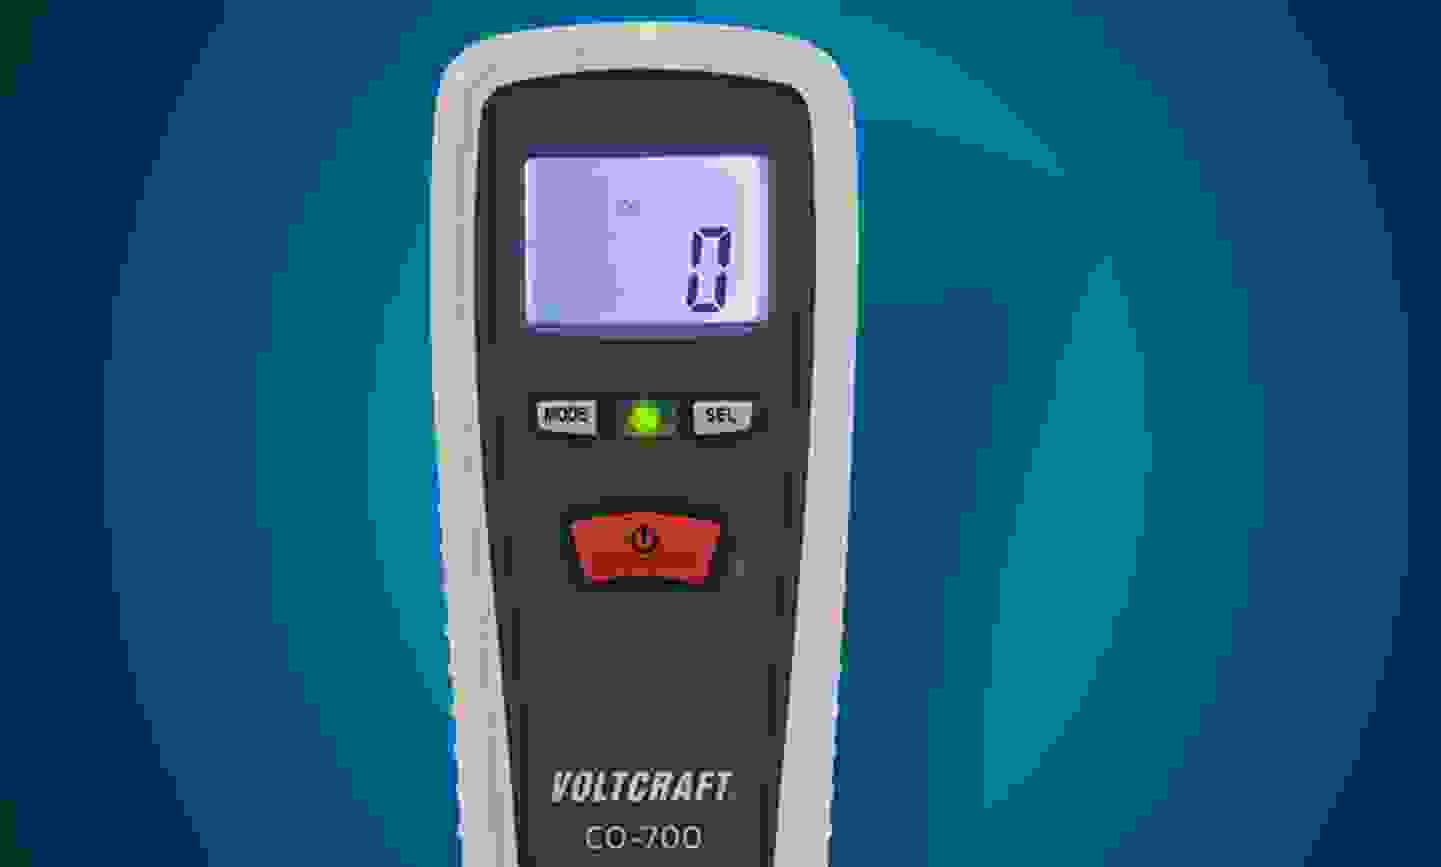 Voltcraft - CO-700 - Détecteur de monoxyde de carbone 0 - 1000 ppm »